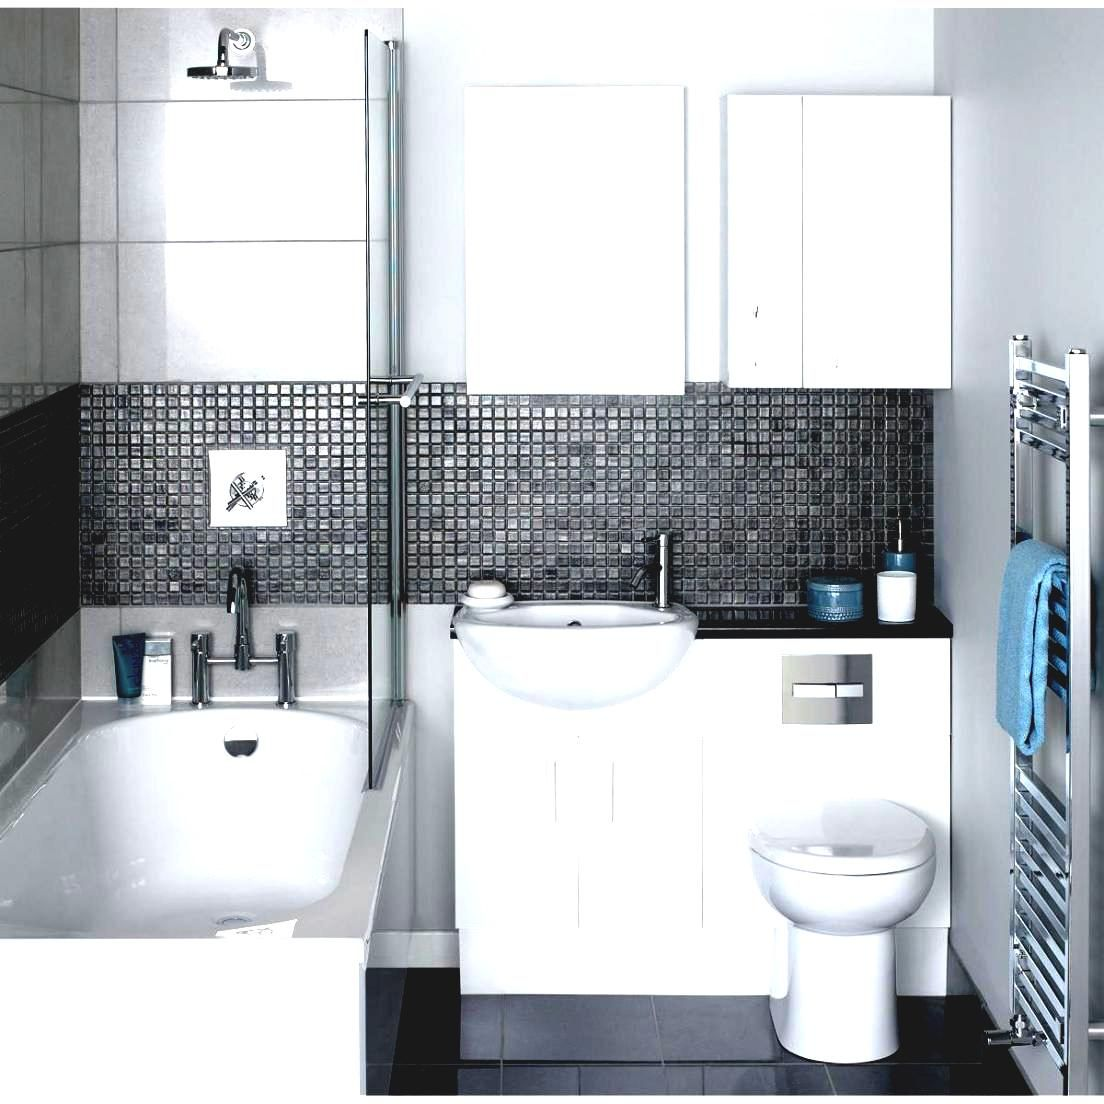 Bathroom And Toilet Design - Find this pin and more on bathroom design 2017 2018